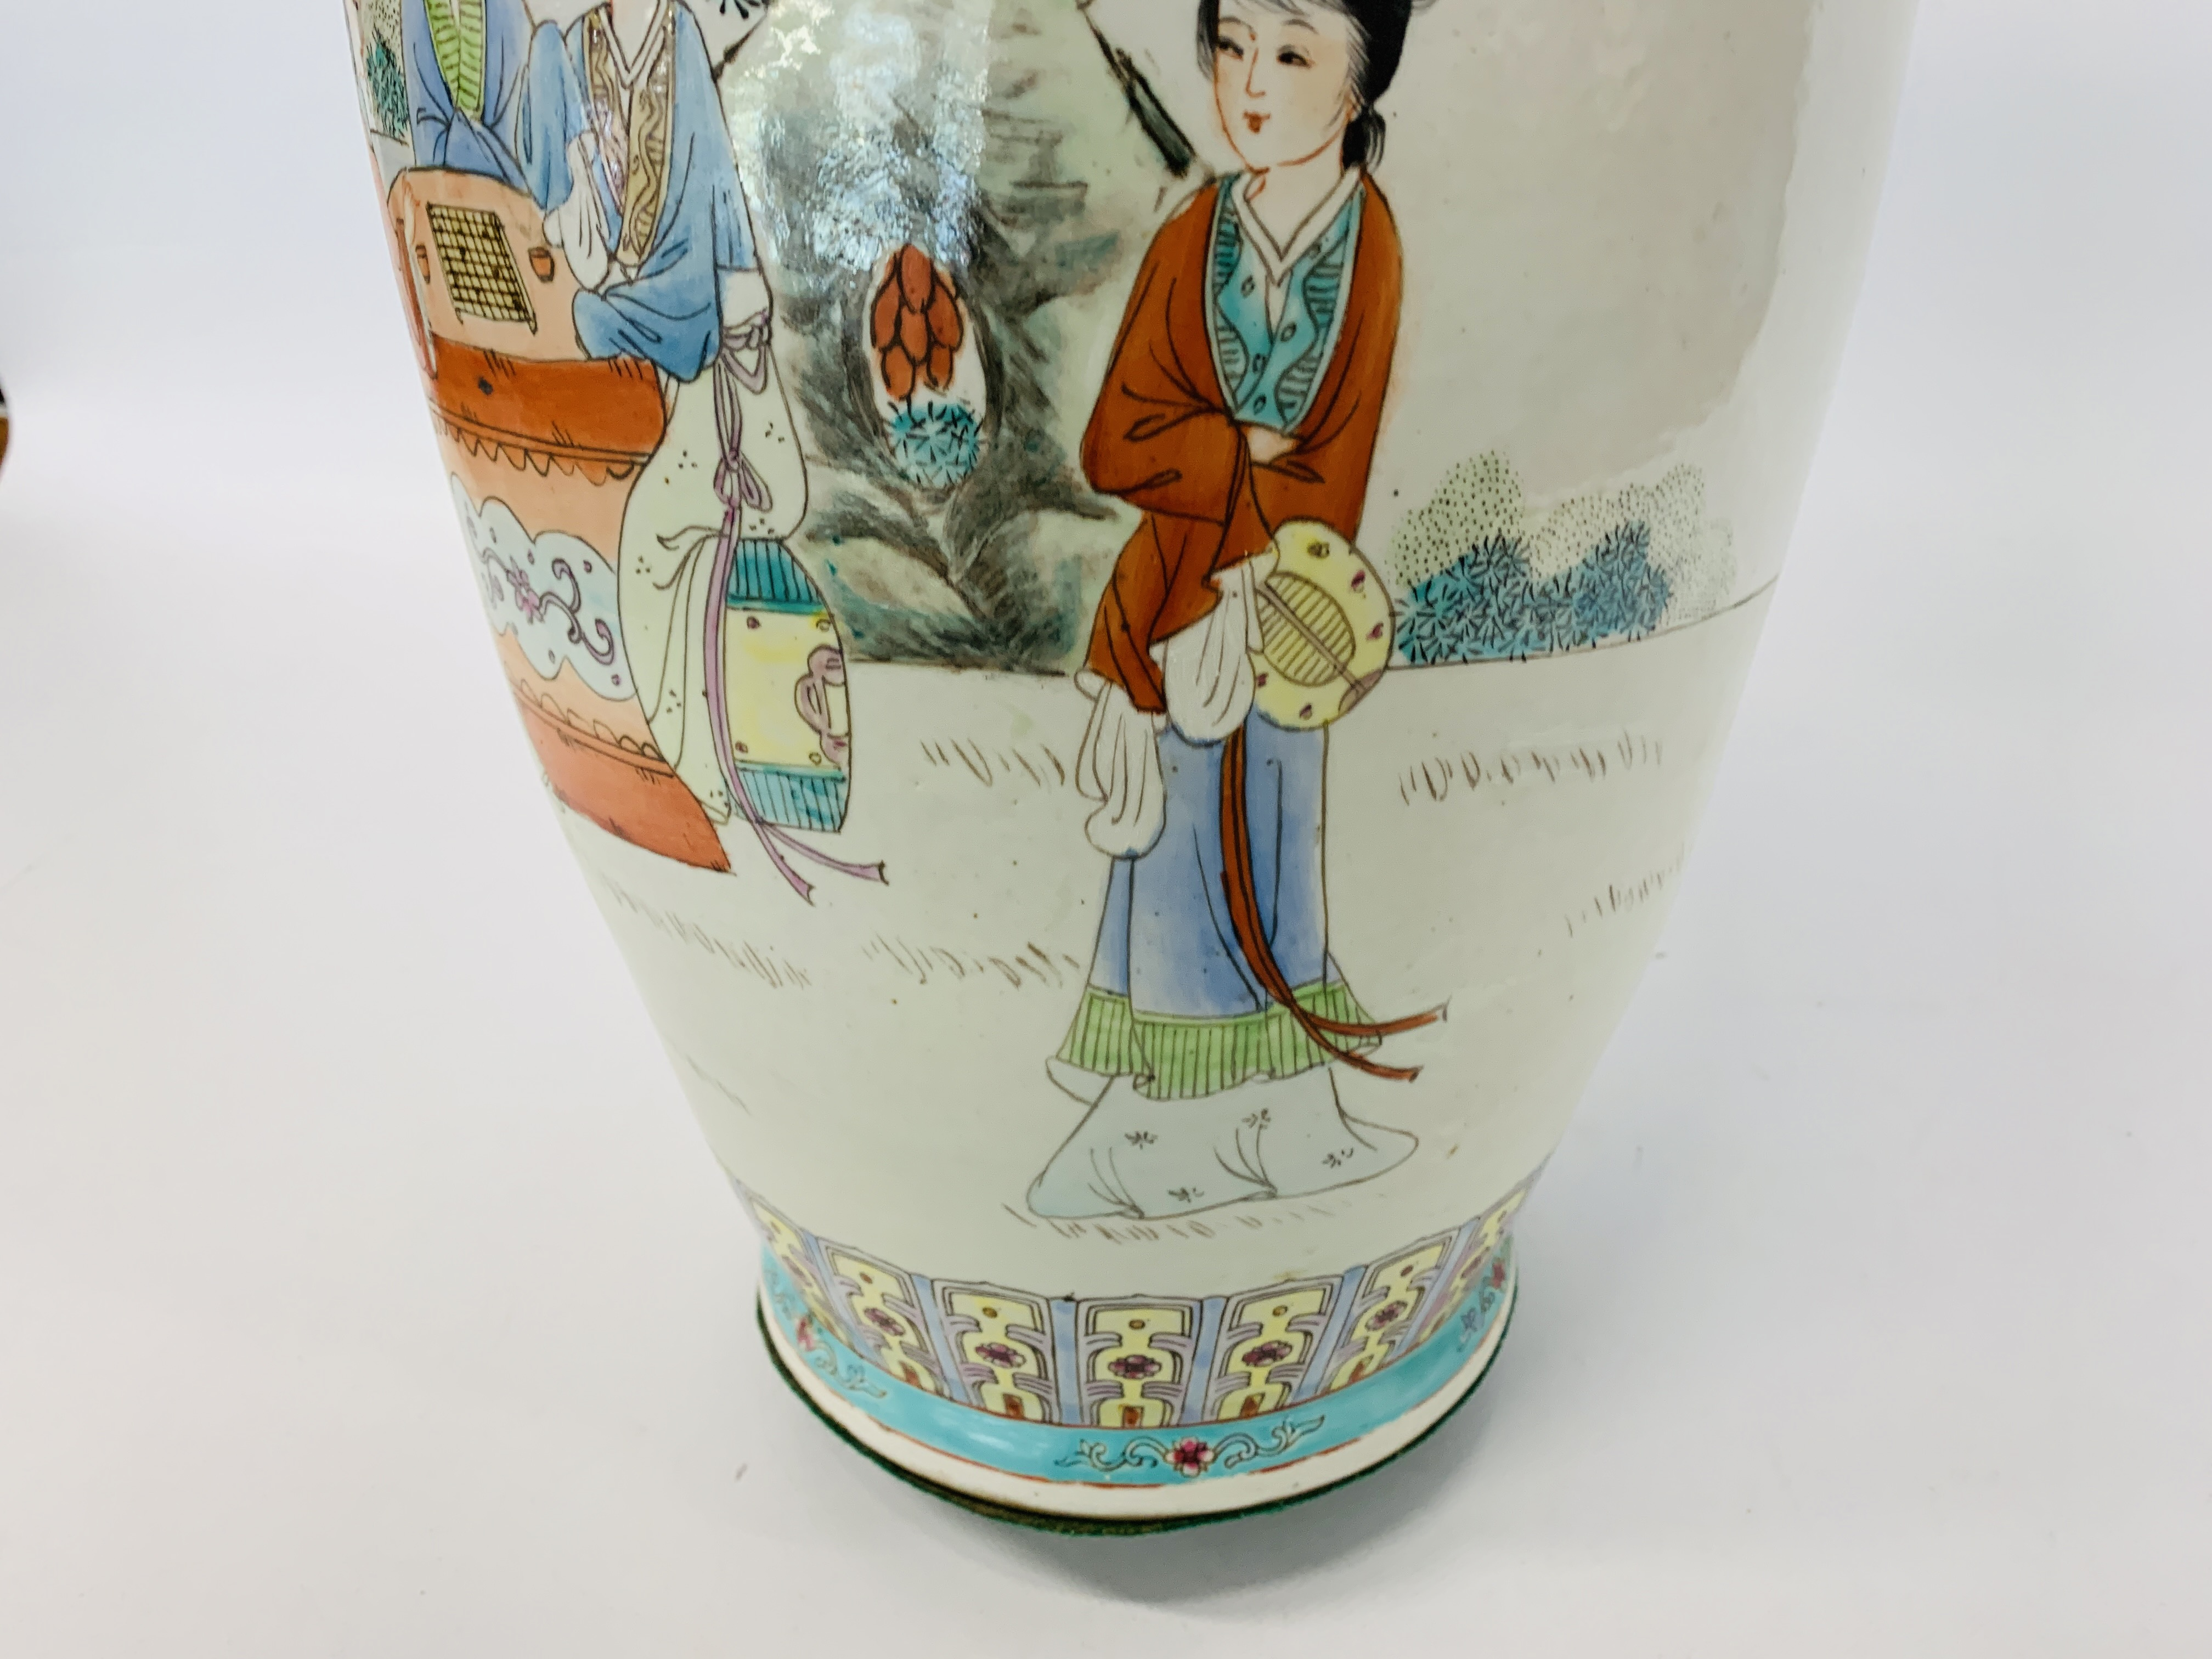 A LARGE CHINESE POLYCHROME VASE - HEIGHT 60CM. - Image 11 of 12